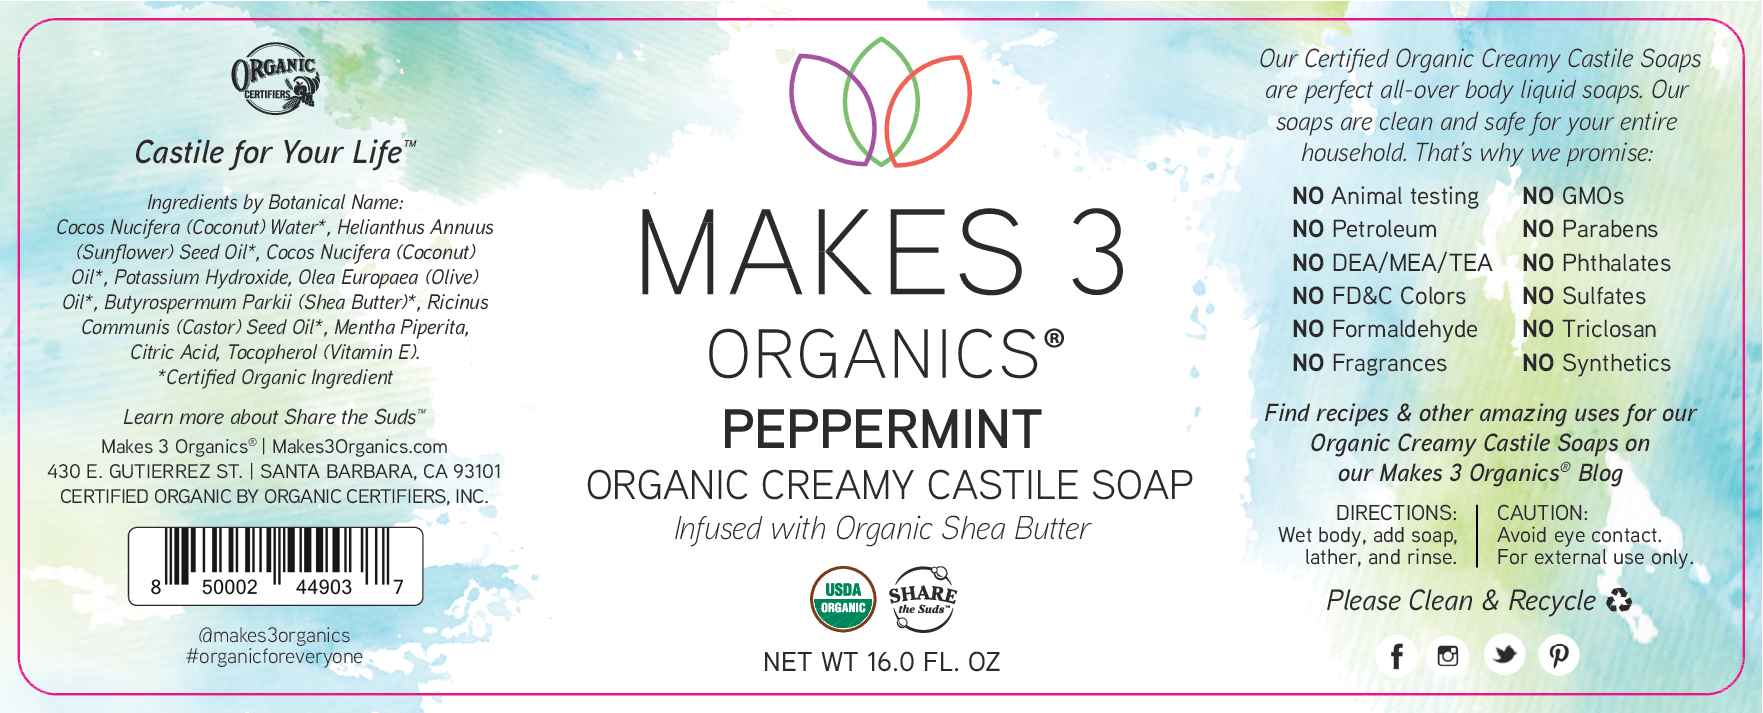 ORGANIC CREAMY CASTILE SOAP, PEPPERMINT | The Natural